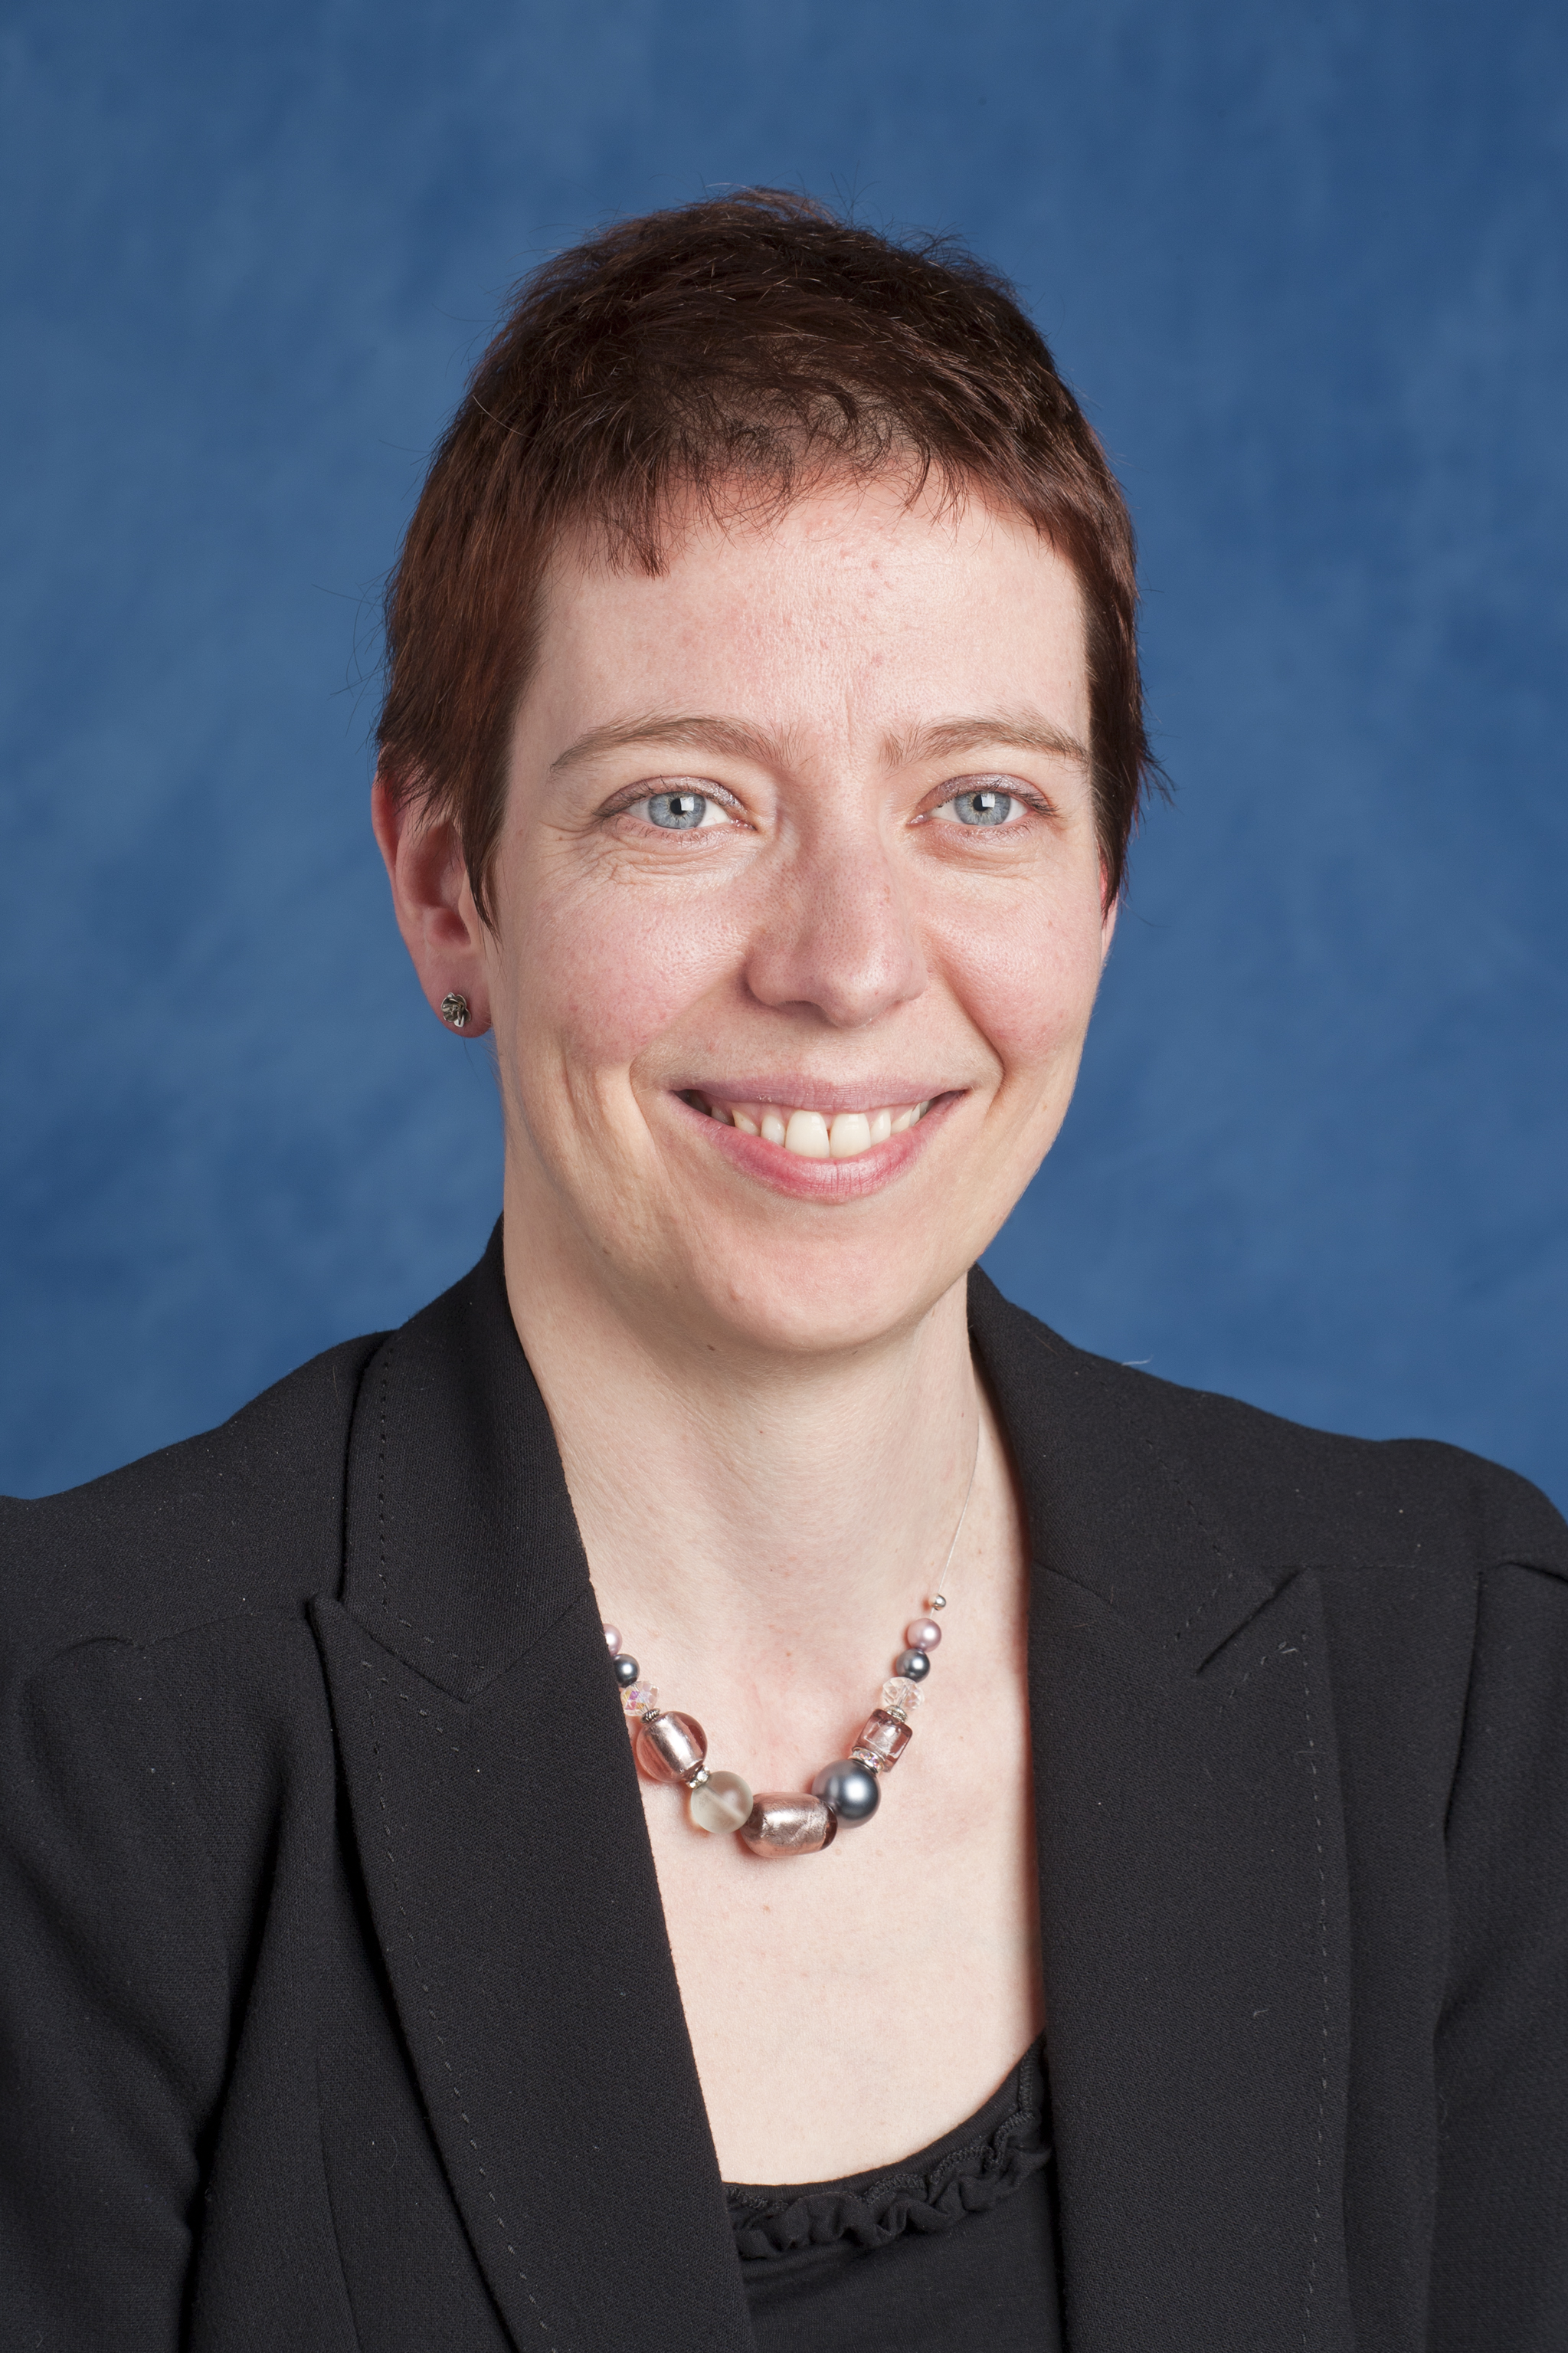 Professor Caroline Moore - Consultant Urological Surgeon and expert on prostate disease and treatment by focal therapy